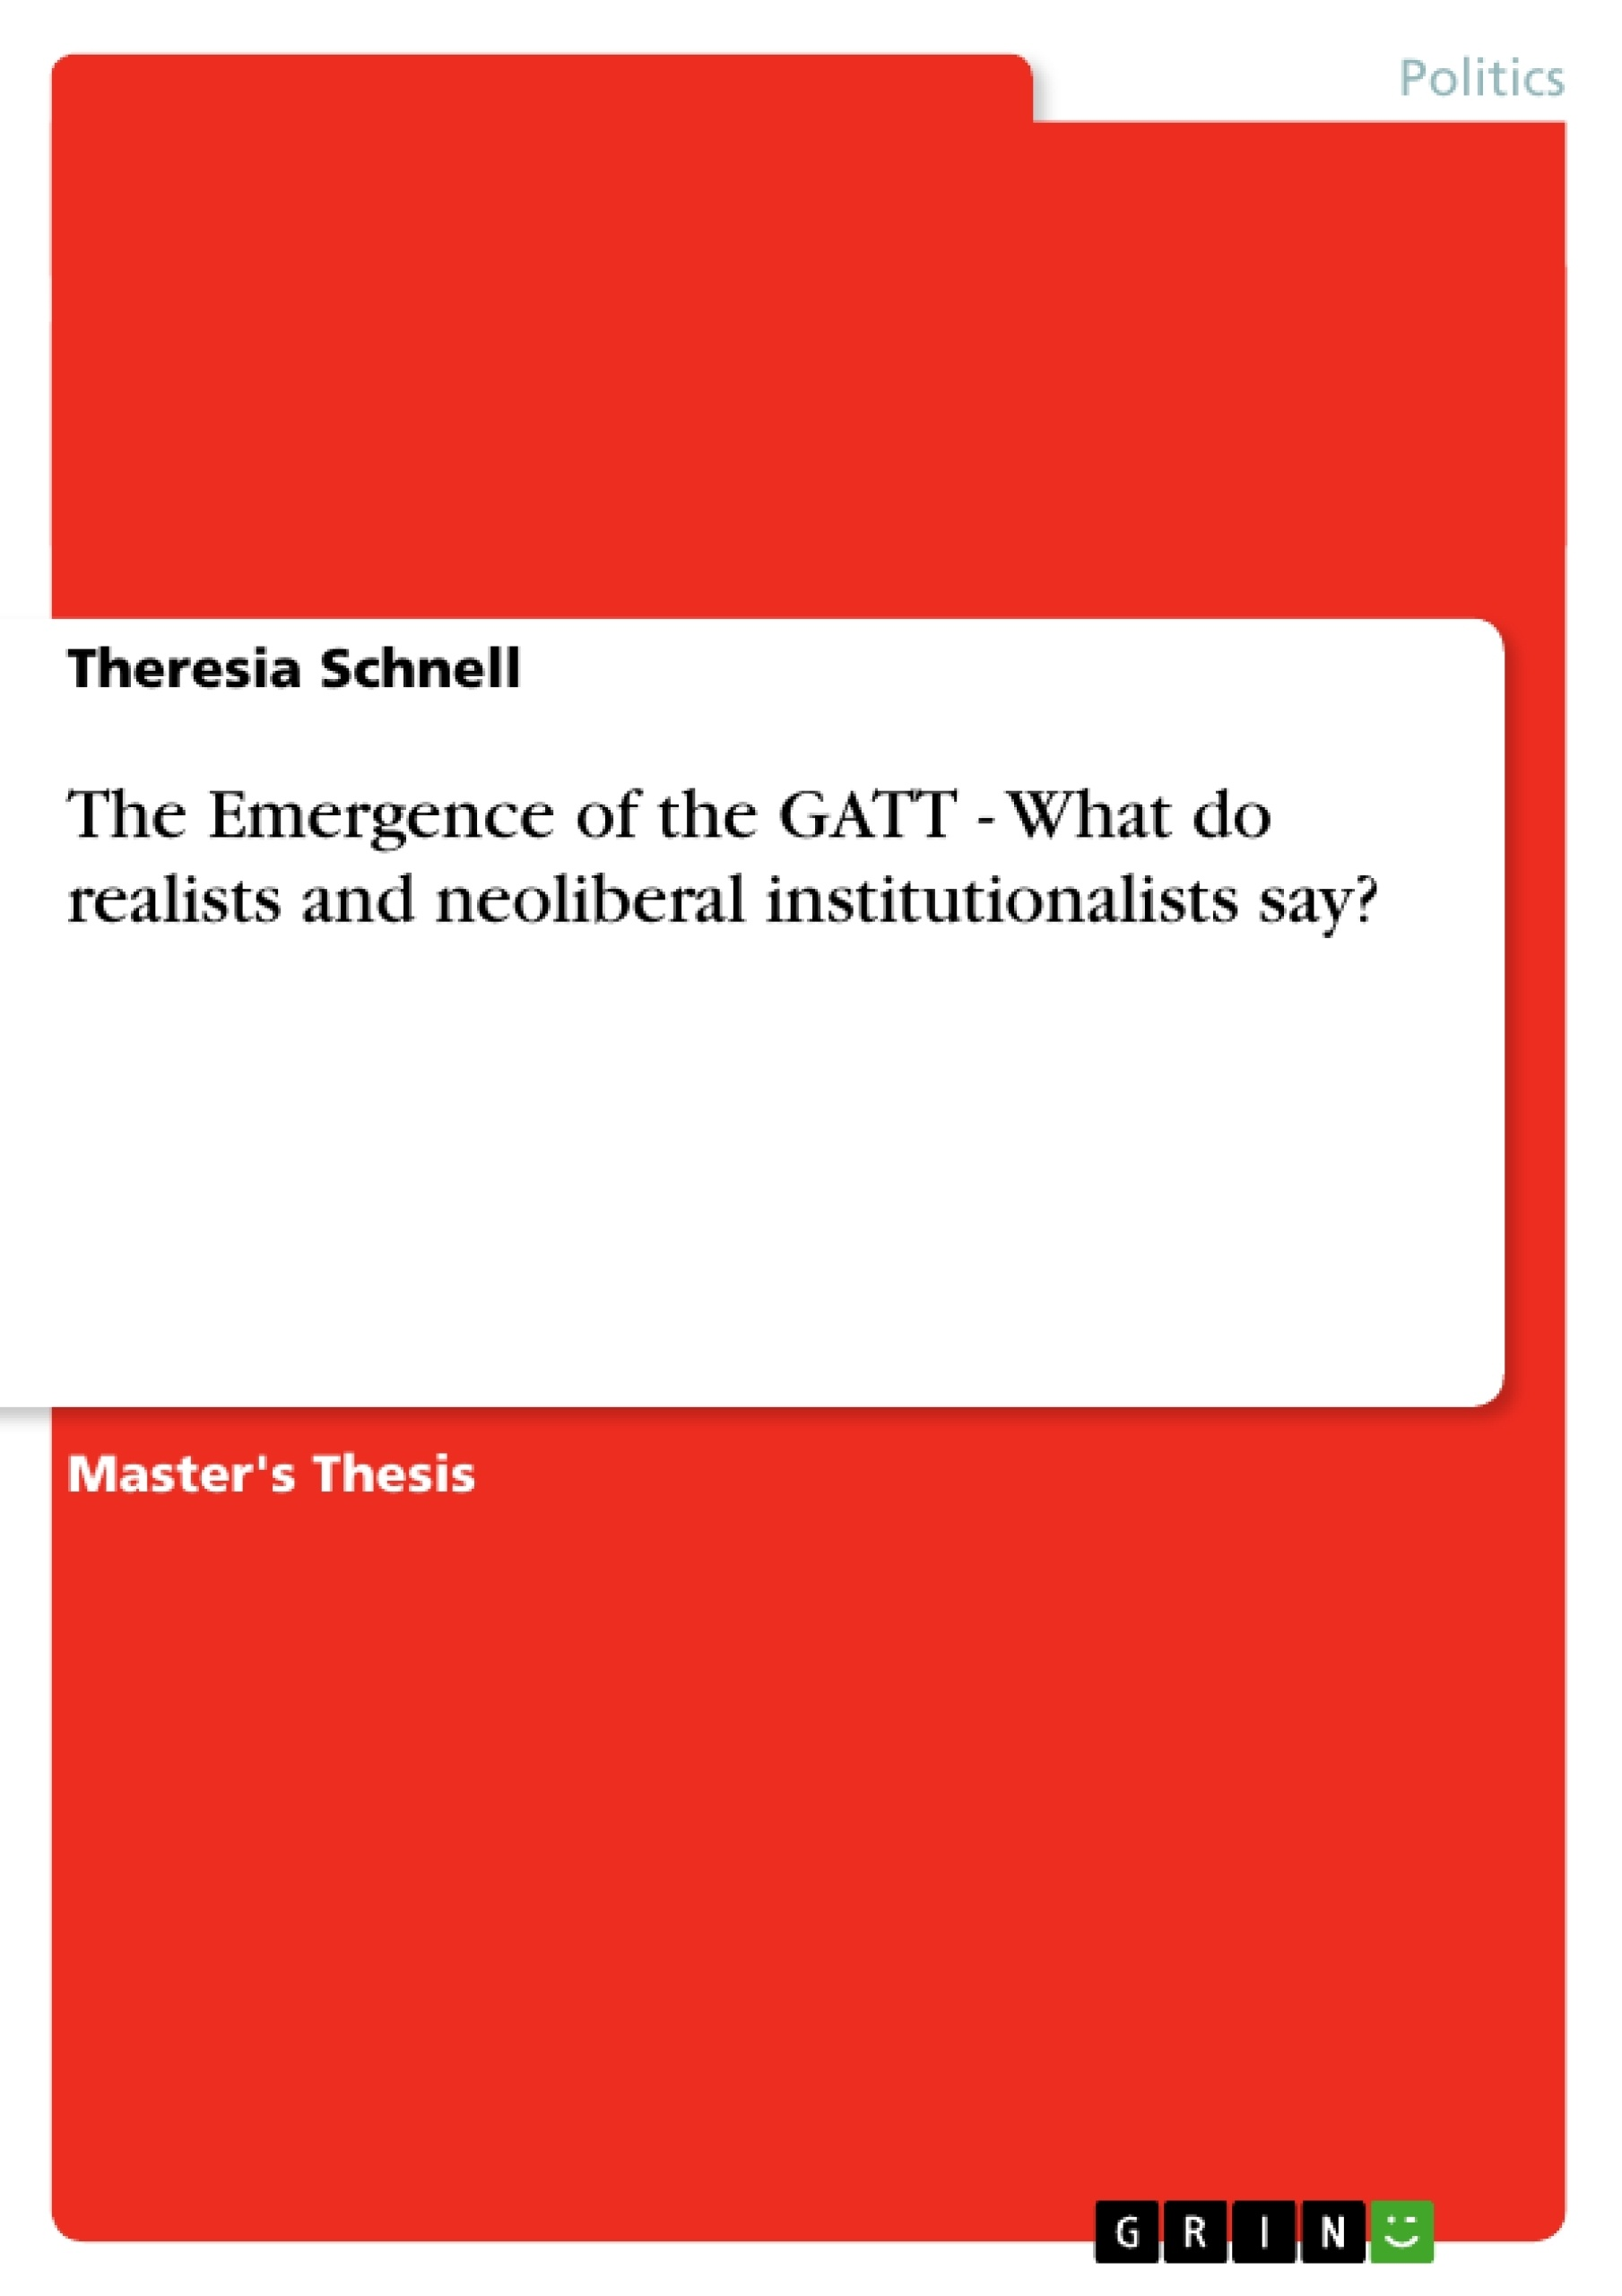 Title: The Emergence of the GATT - What do realists and neoliberal institutionalists say?